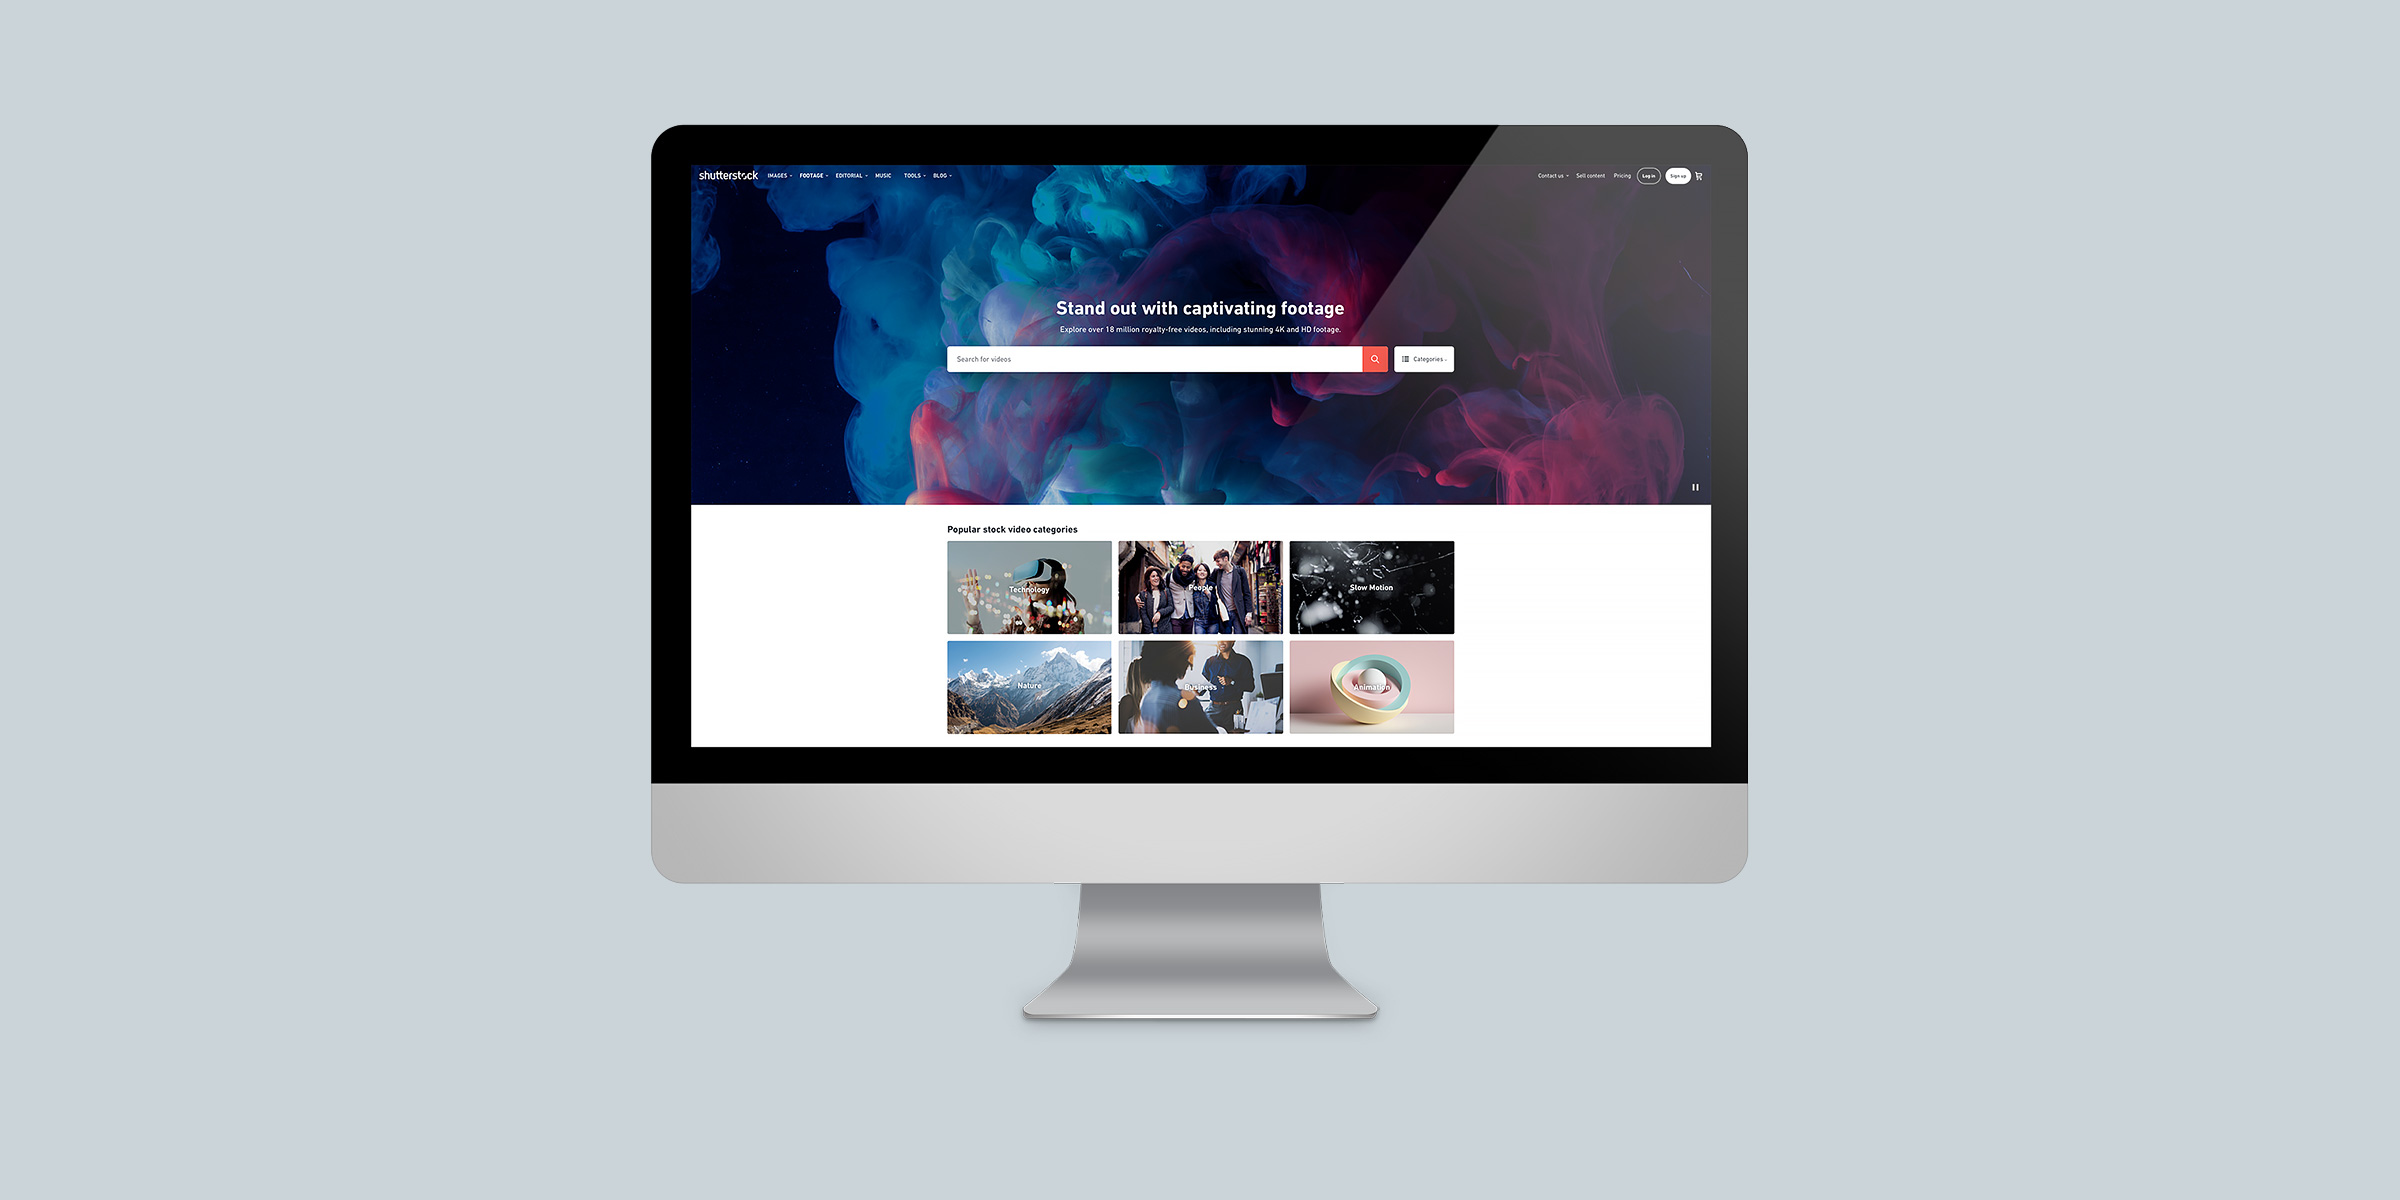 Header image for the Shutterstock Footage project, representing an iMac display on a blue-grey background, with the website homepage on screen.